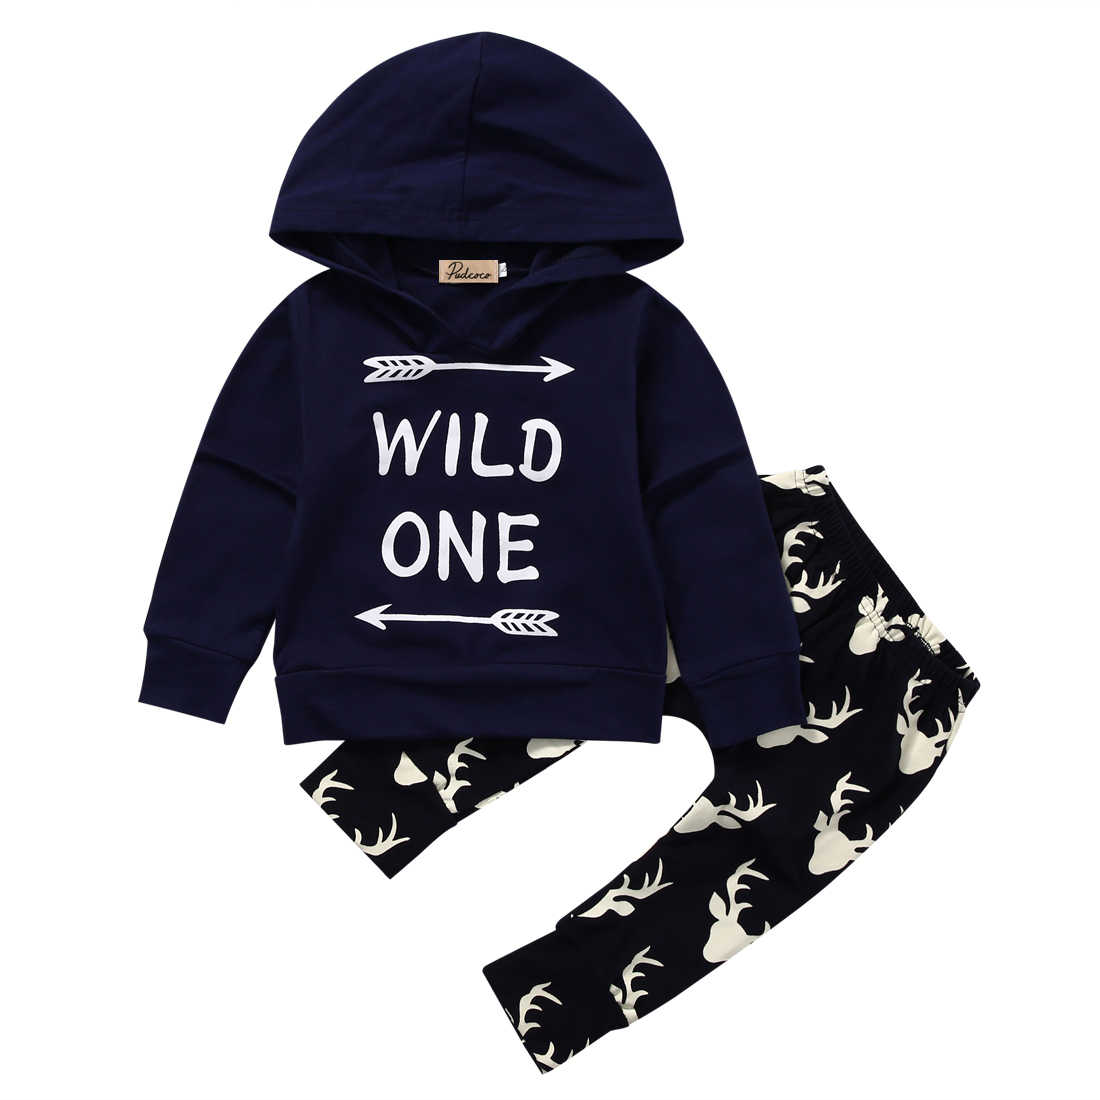 78a399648 Detail Feedback Questions about Newborn Baby Boys Tops Wild One ...